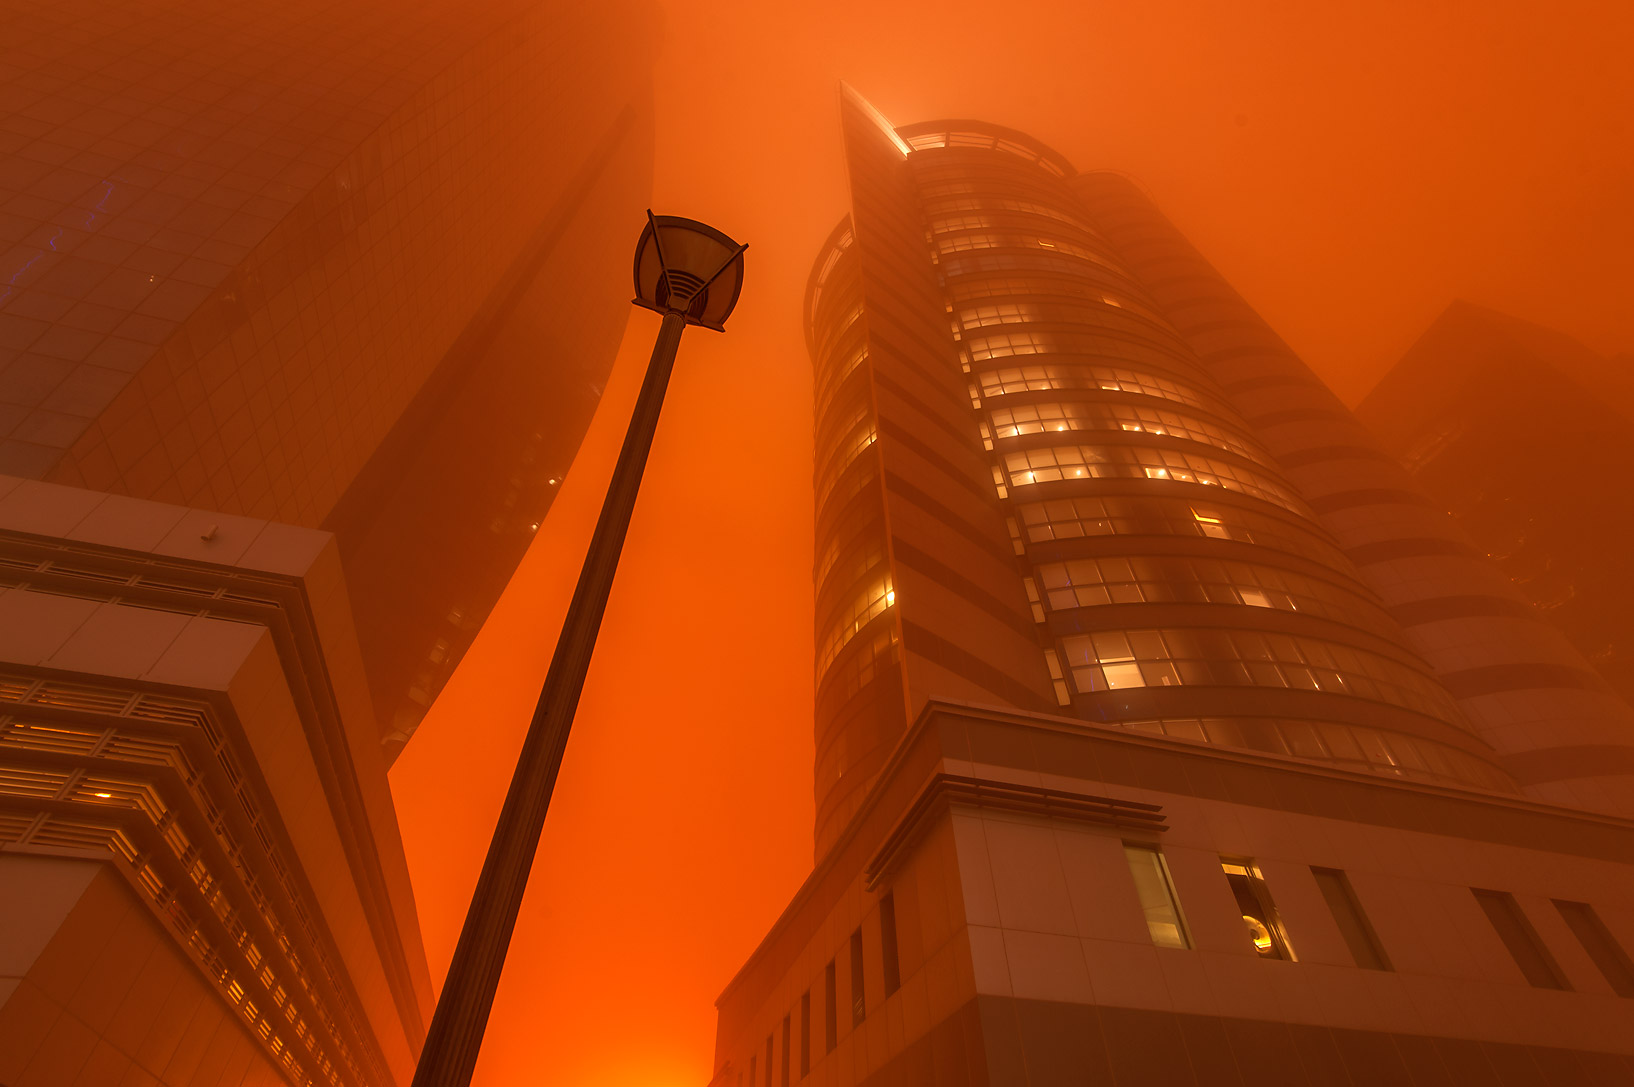 Al Huda Engineering Works and Taawun towers in West Bay during dust storm. Doha, Qatar